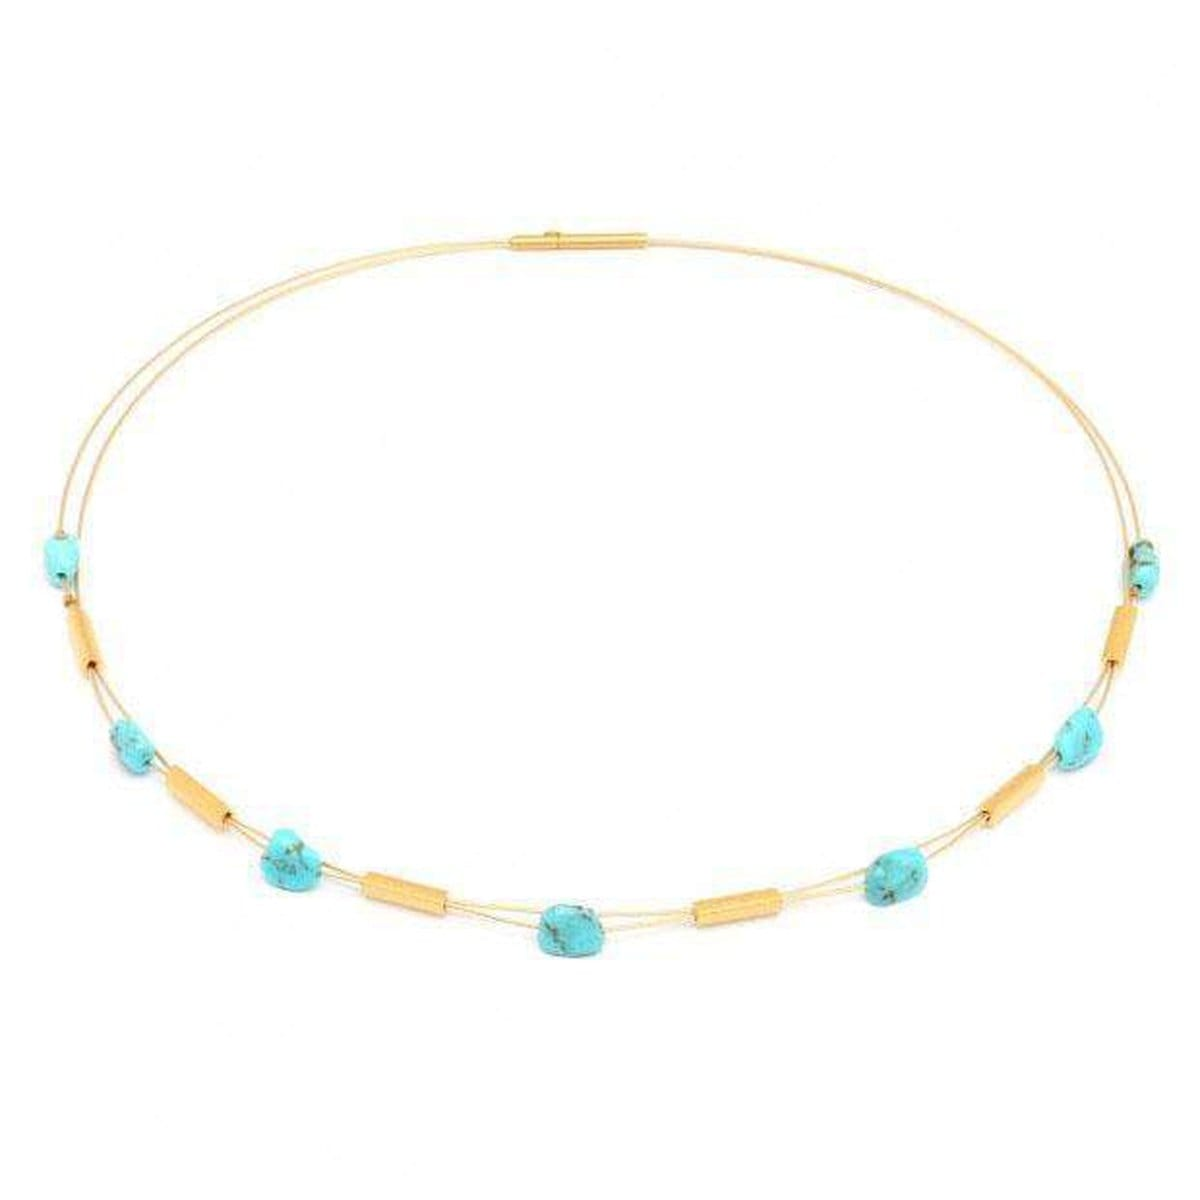 Tritura Turquoise Necklace - 85332256-Bernd Wolf-Renee Taylor Gallery